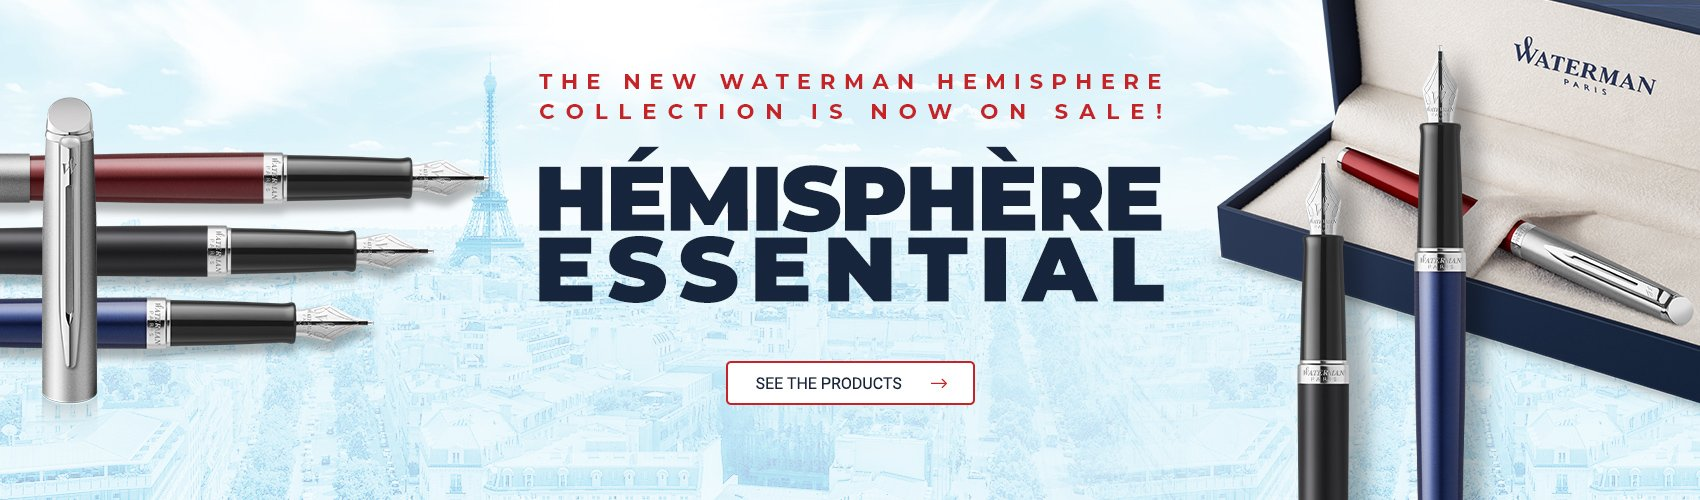 Hemisphere New Collection Essential